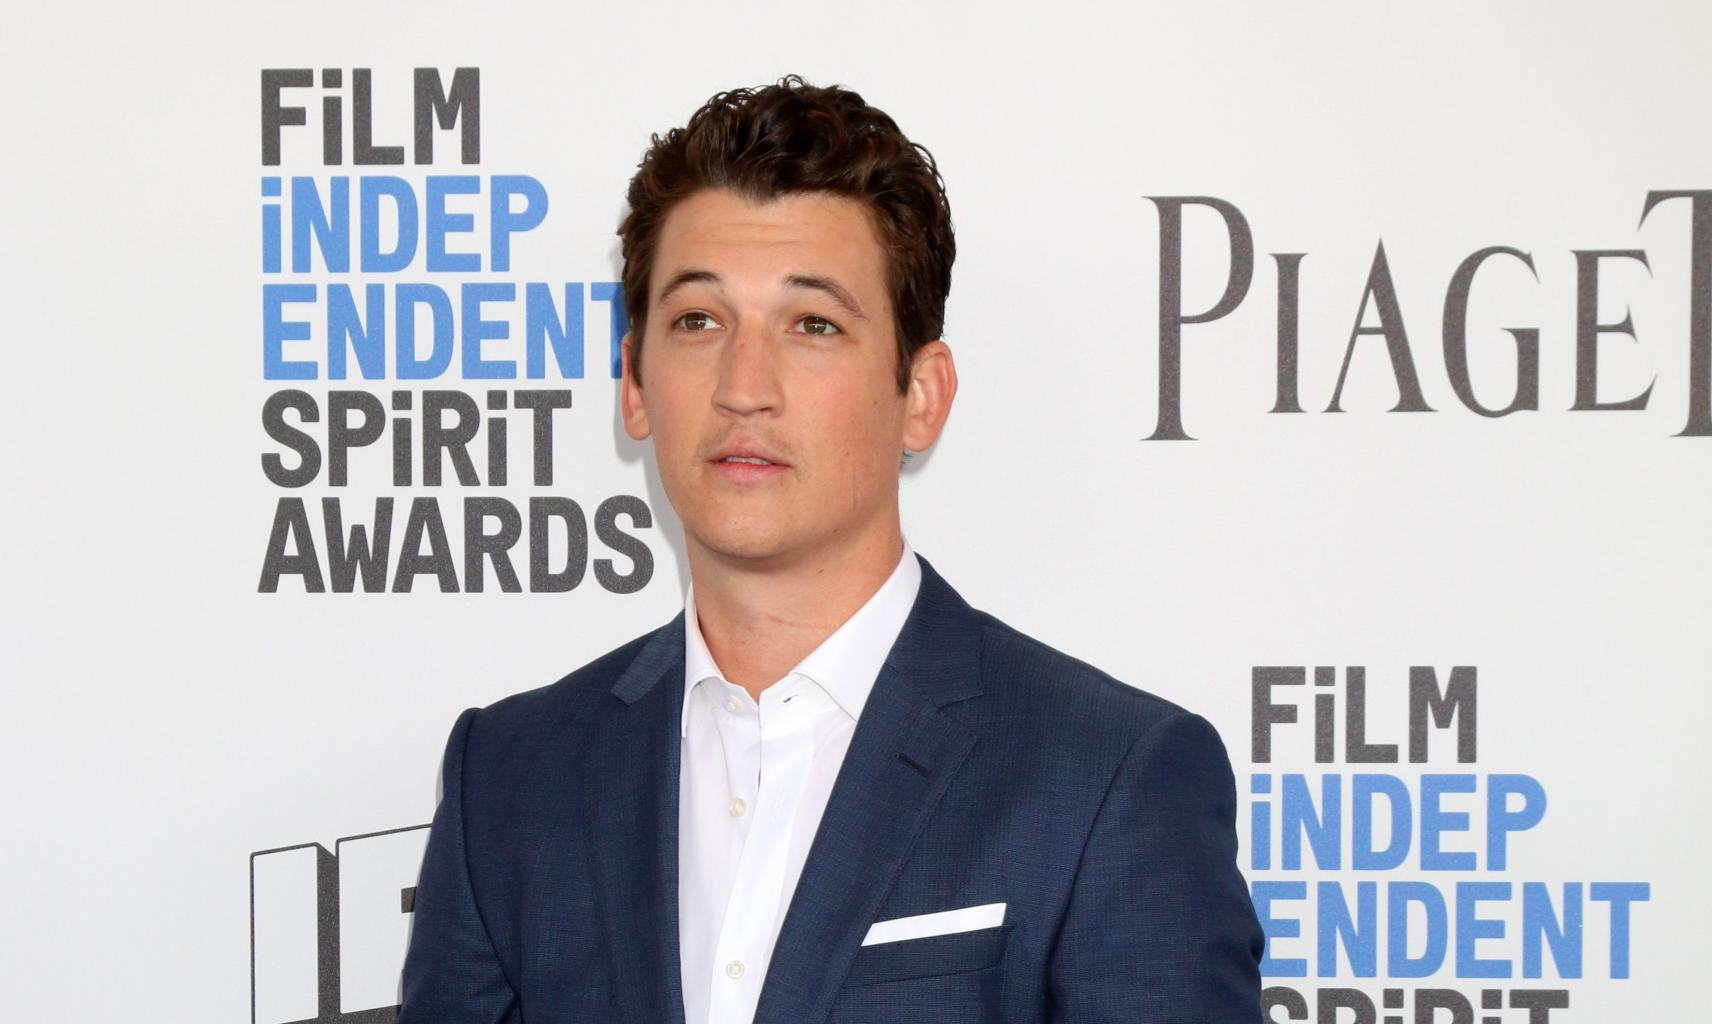 Miles Teller Breaks His Silence After Reportedly Being Detained For Public Intoxication: 'Don't Believe Everything You Read'